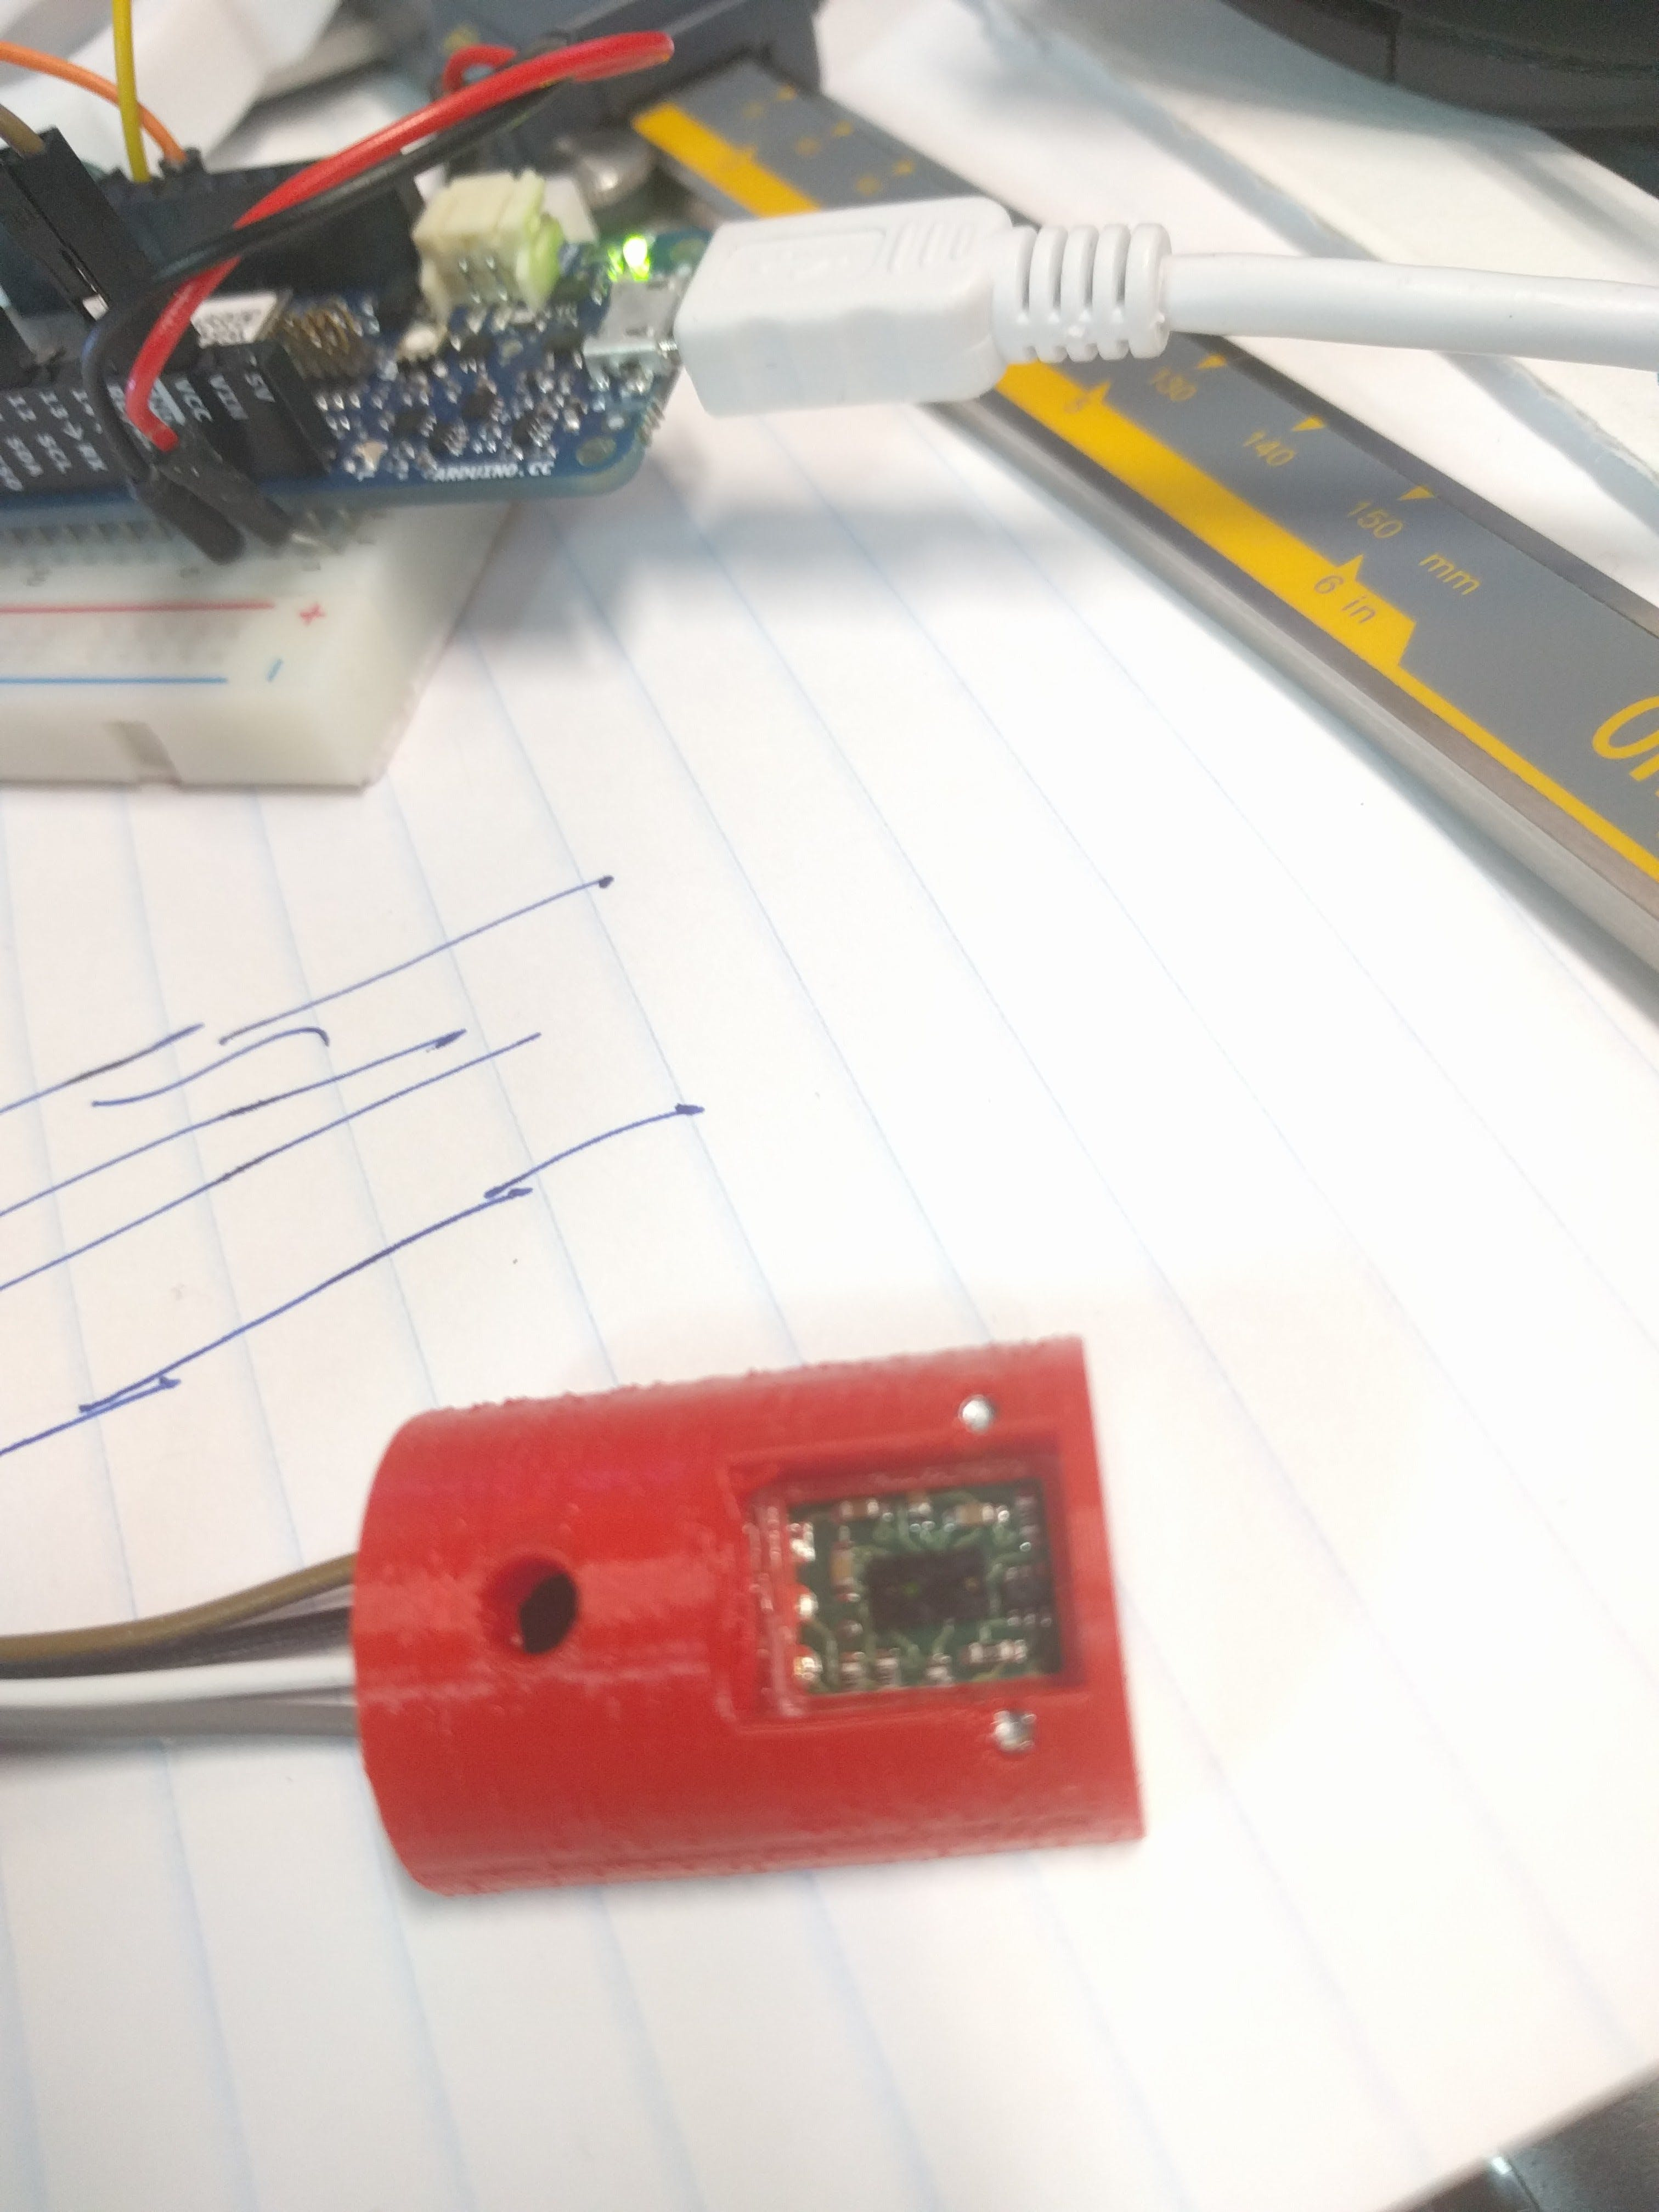 A transparent plastic shield is mounted in front of the VL6180 board to make it water proof